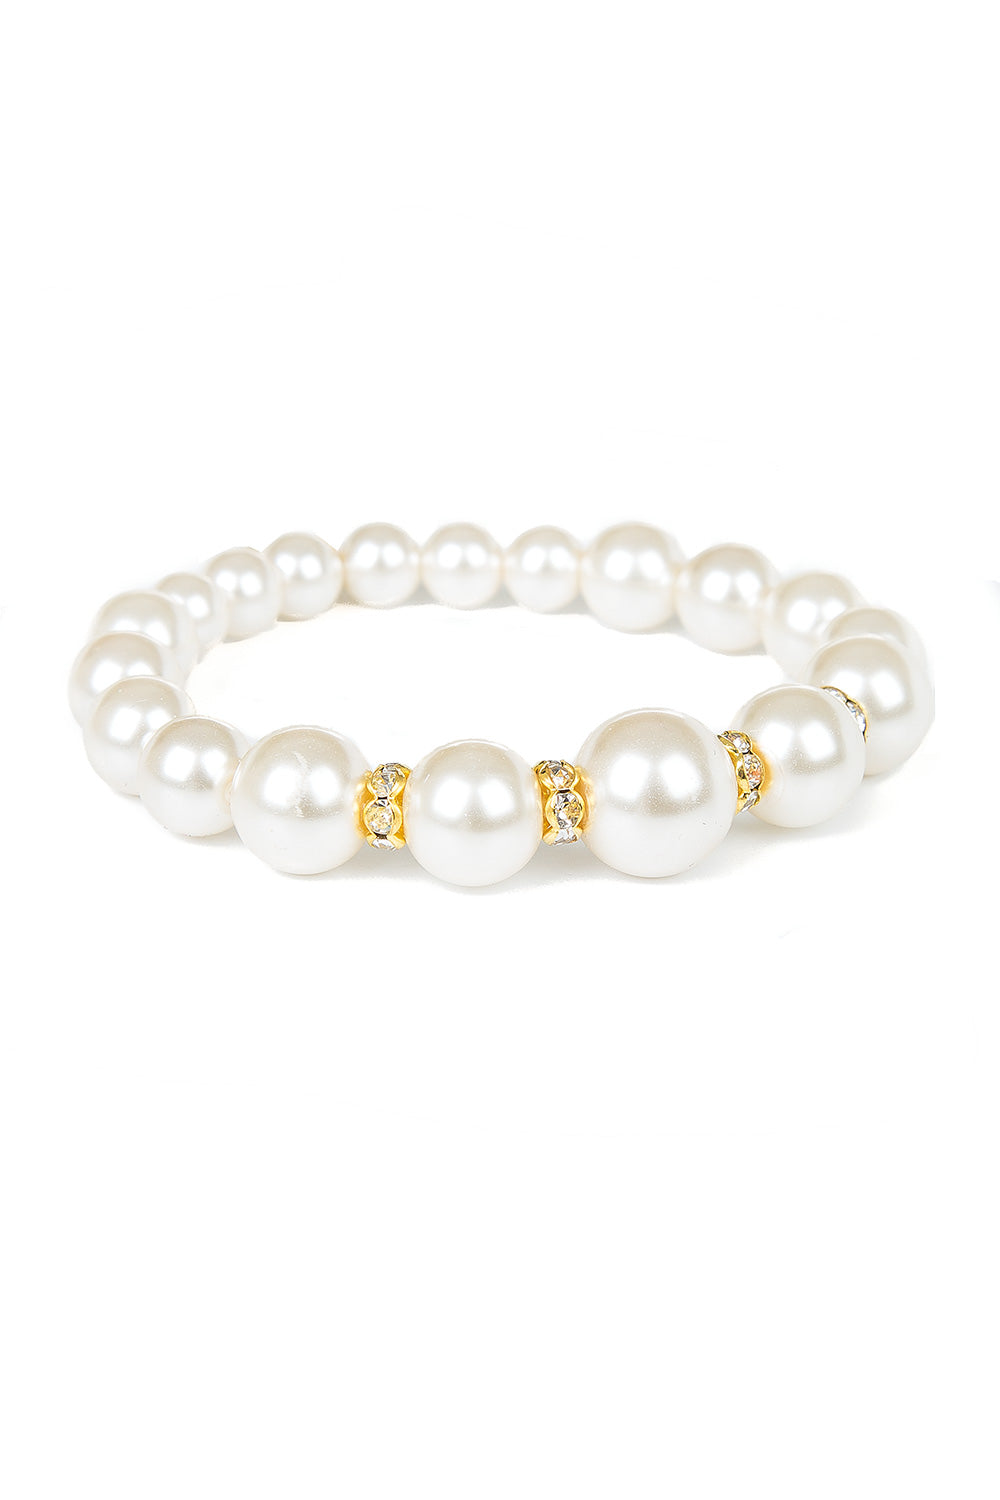 Type 1 Posh Pearls Bracelet